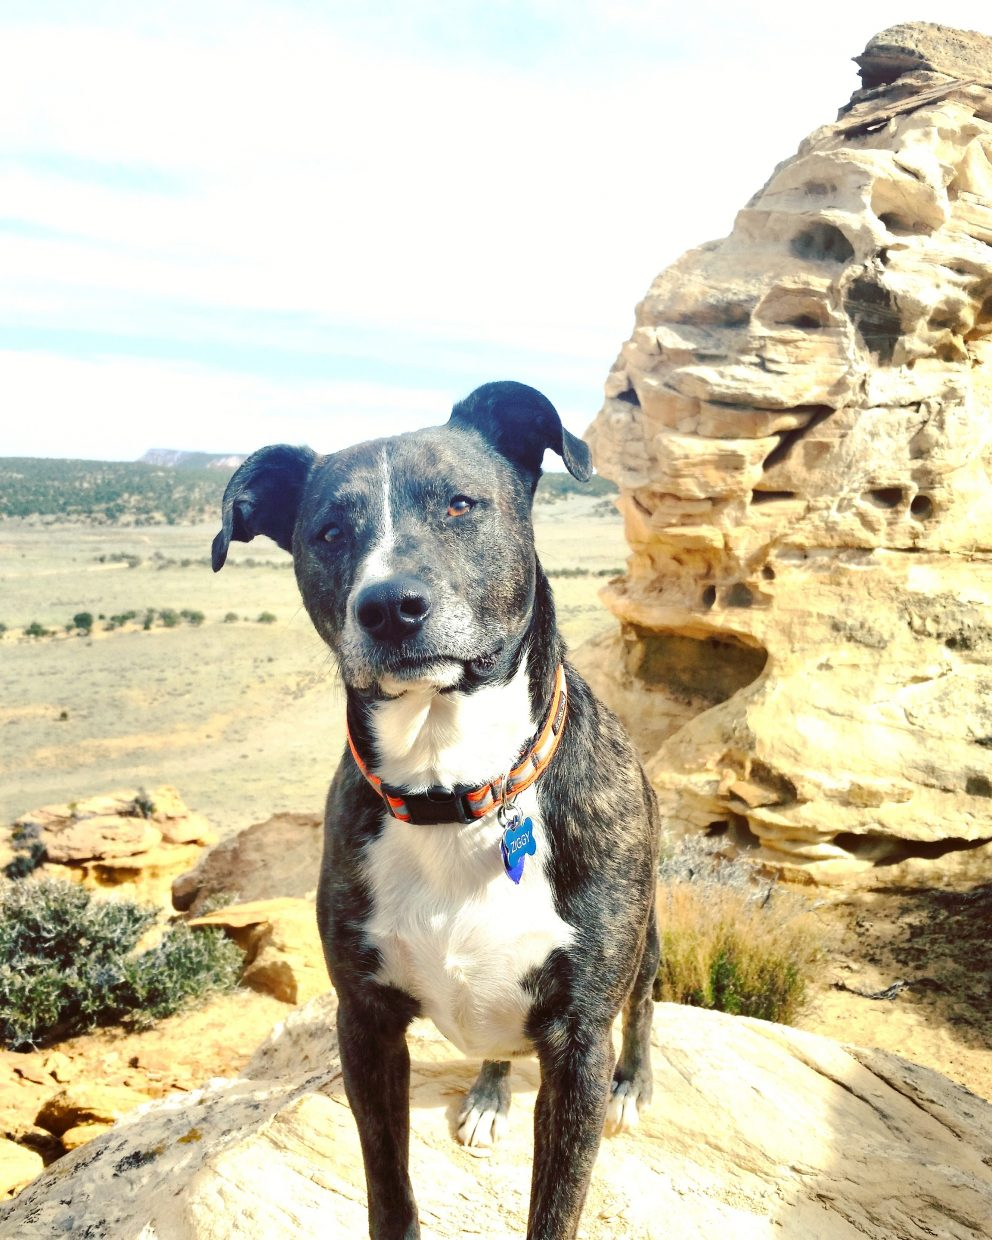 """Ziggy in the desert."" Submitted by Mary Lourenco."